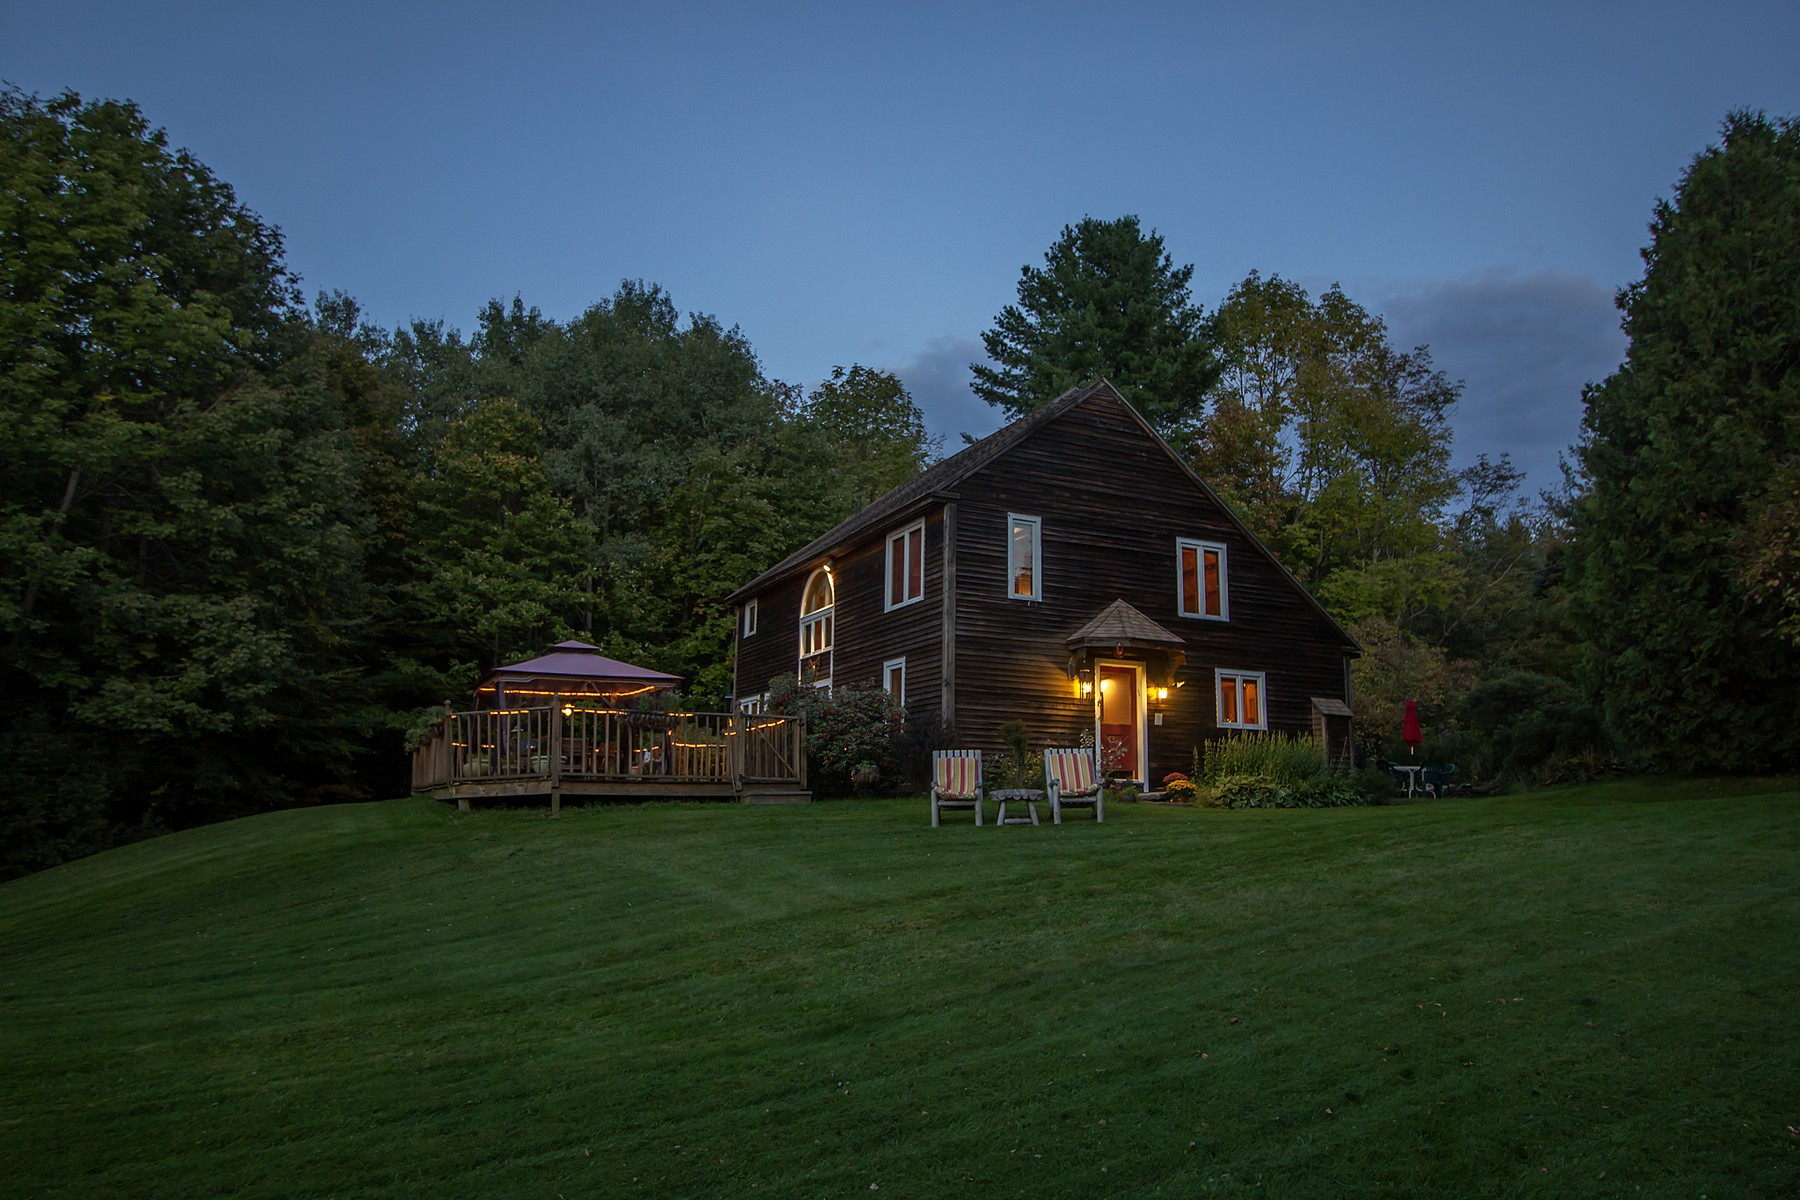 Single Family Home for Sale at Post and Beam with Mountain View 146 Minor Rd Wilmington, Vermont 05363 United States